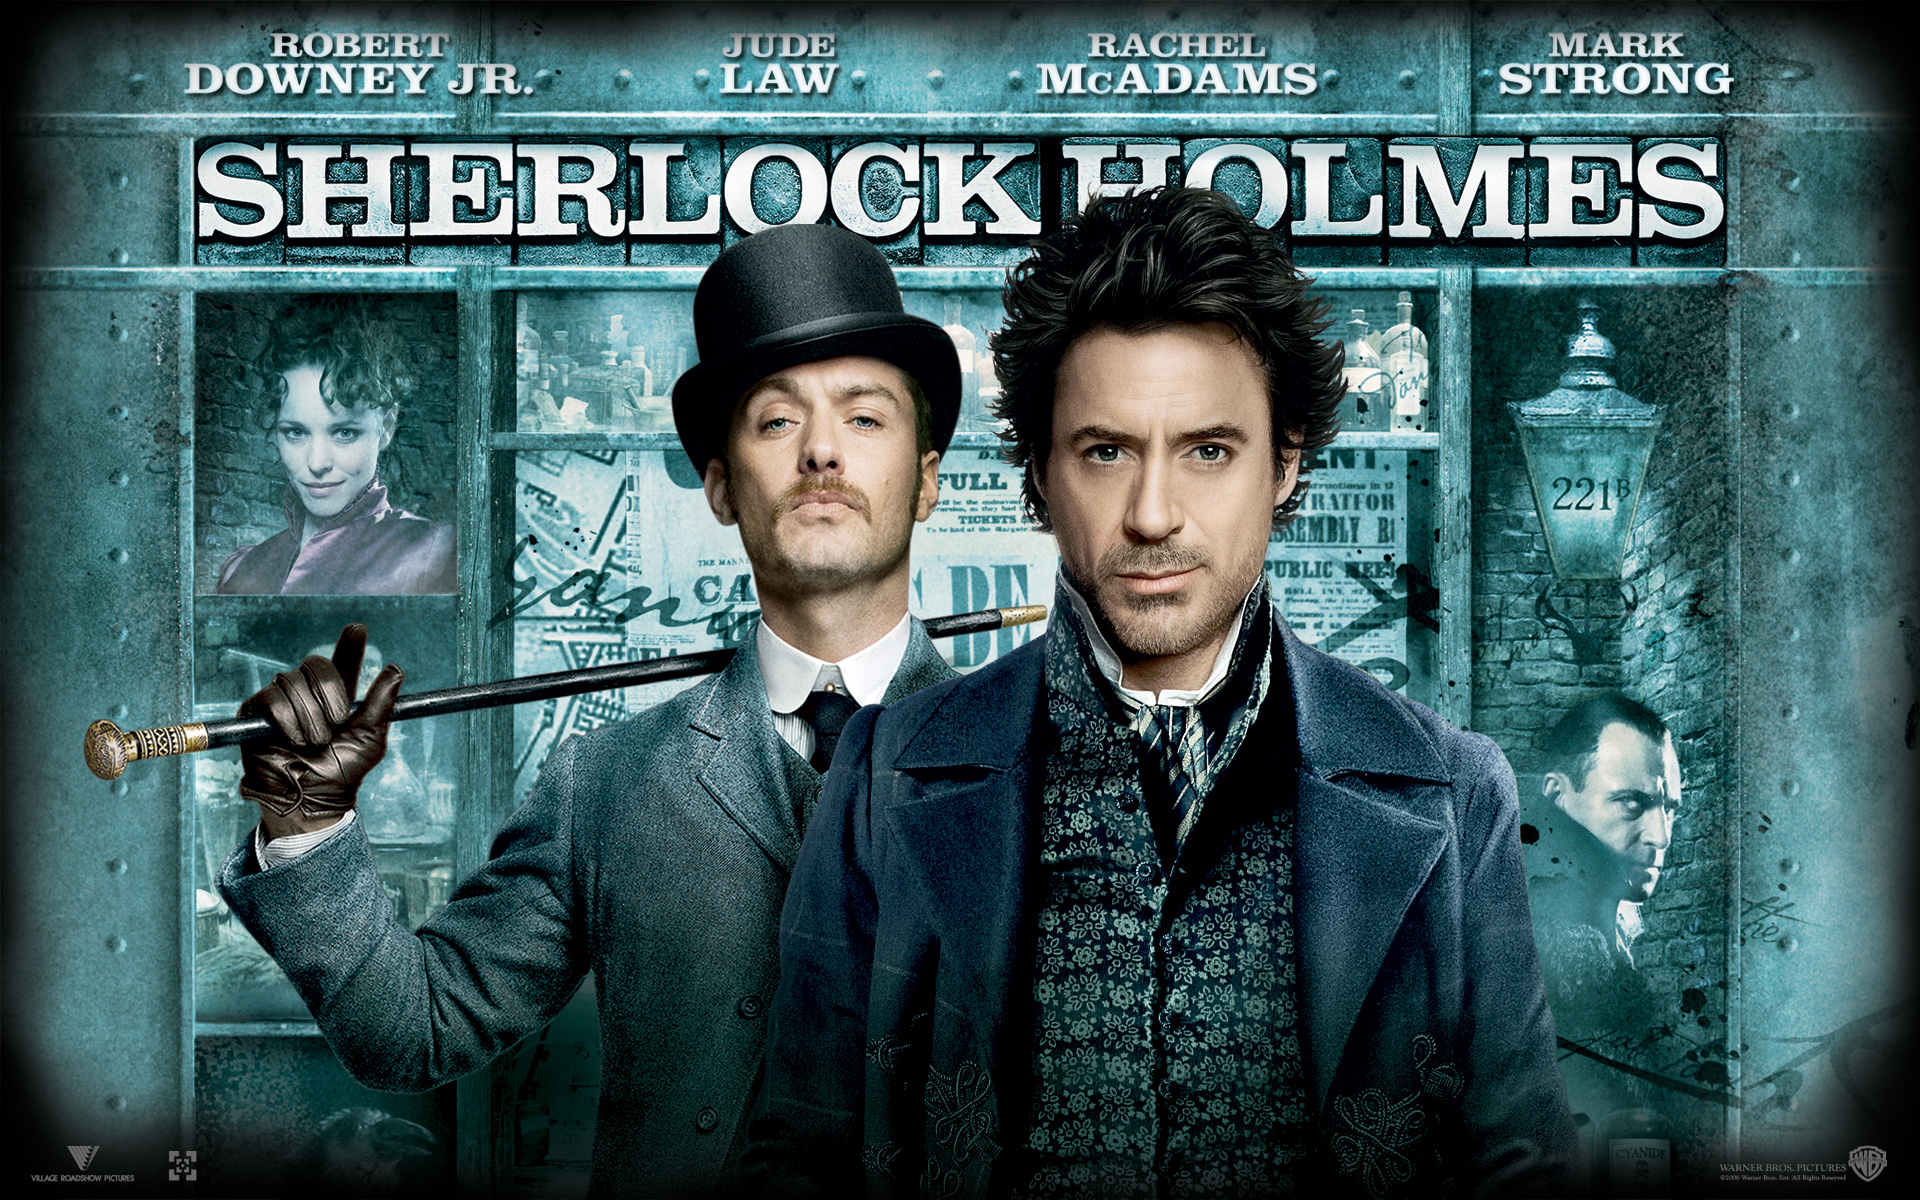 Sherlock Holmes by Guy Ritchie: Viral Marketing and advergame